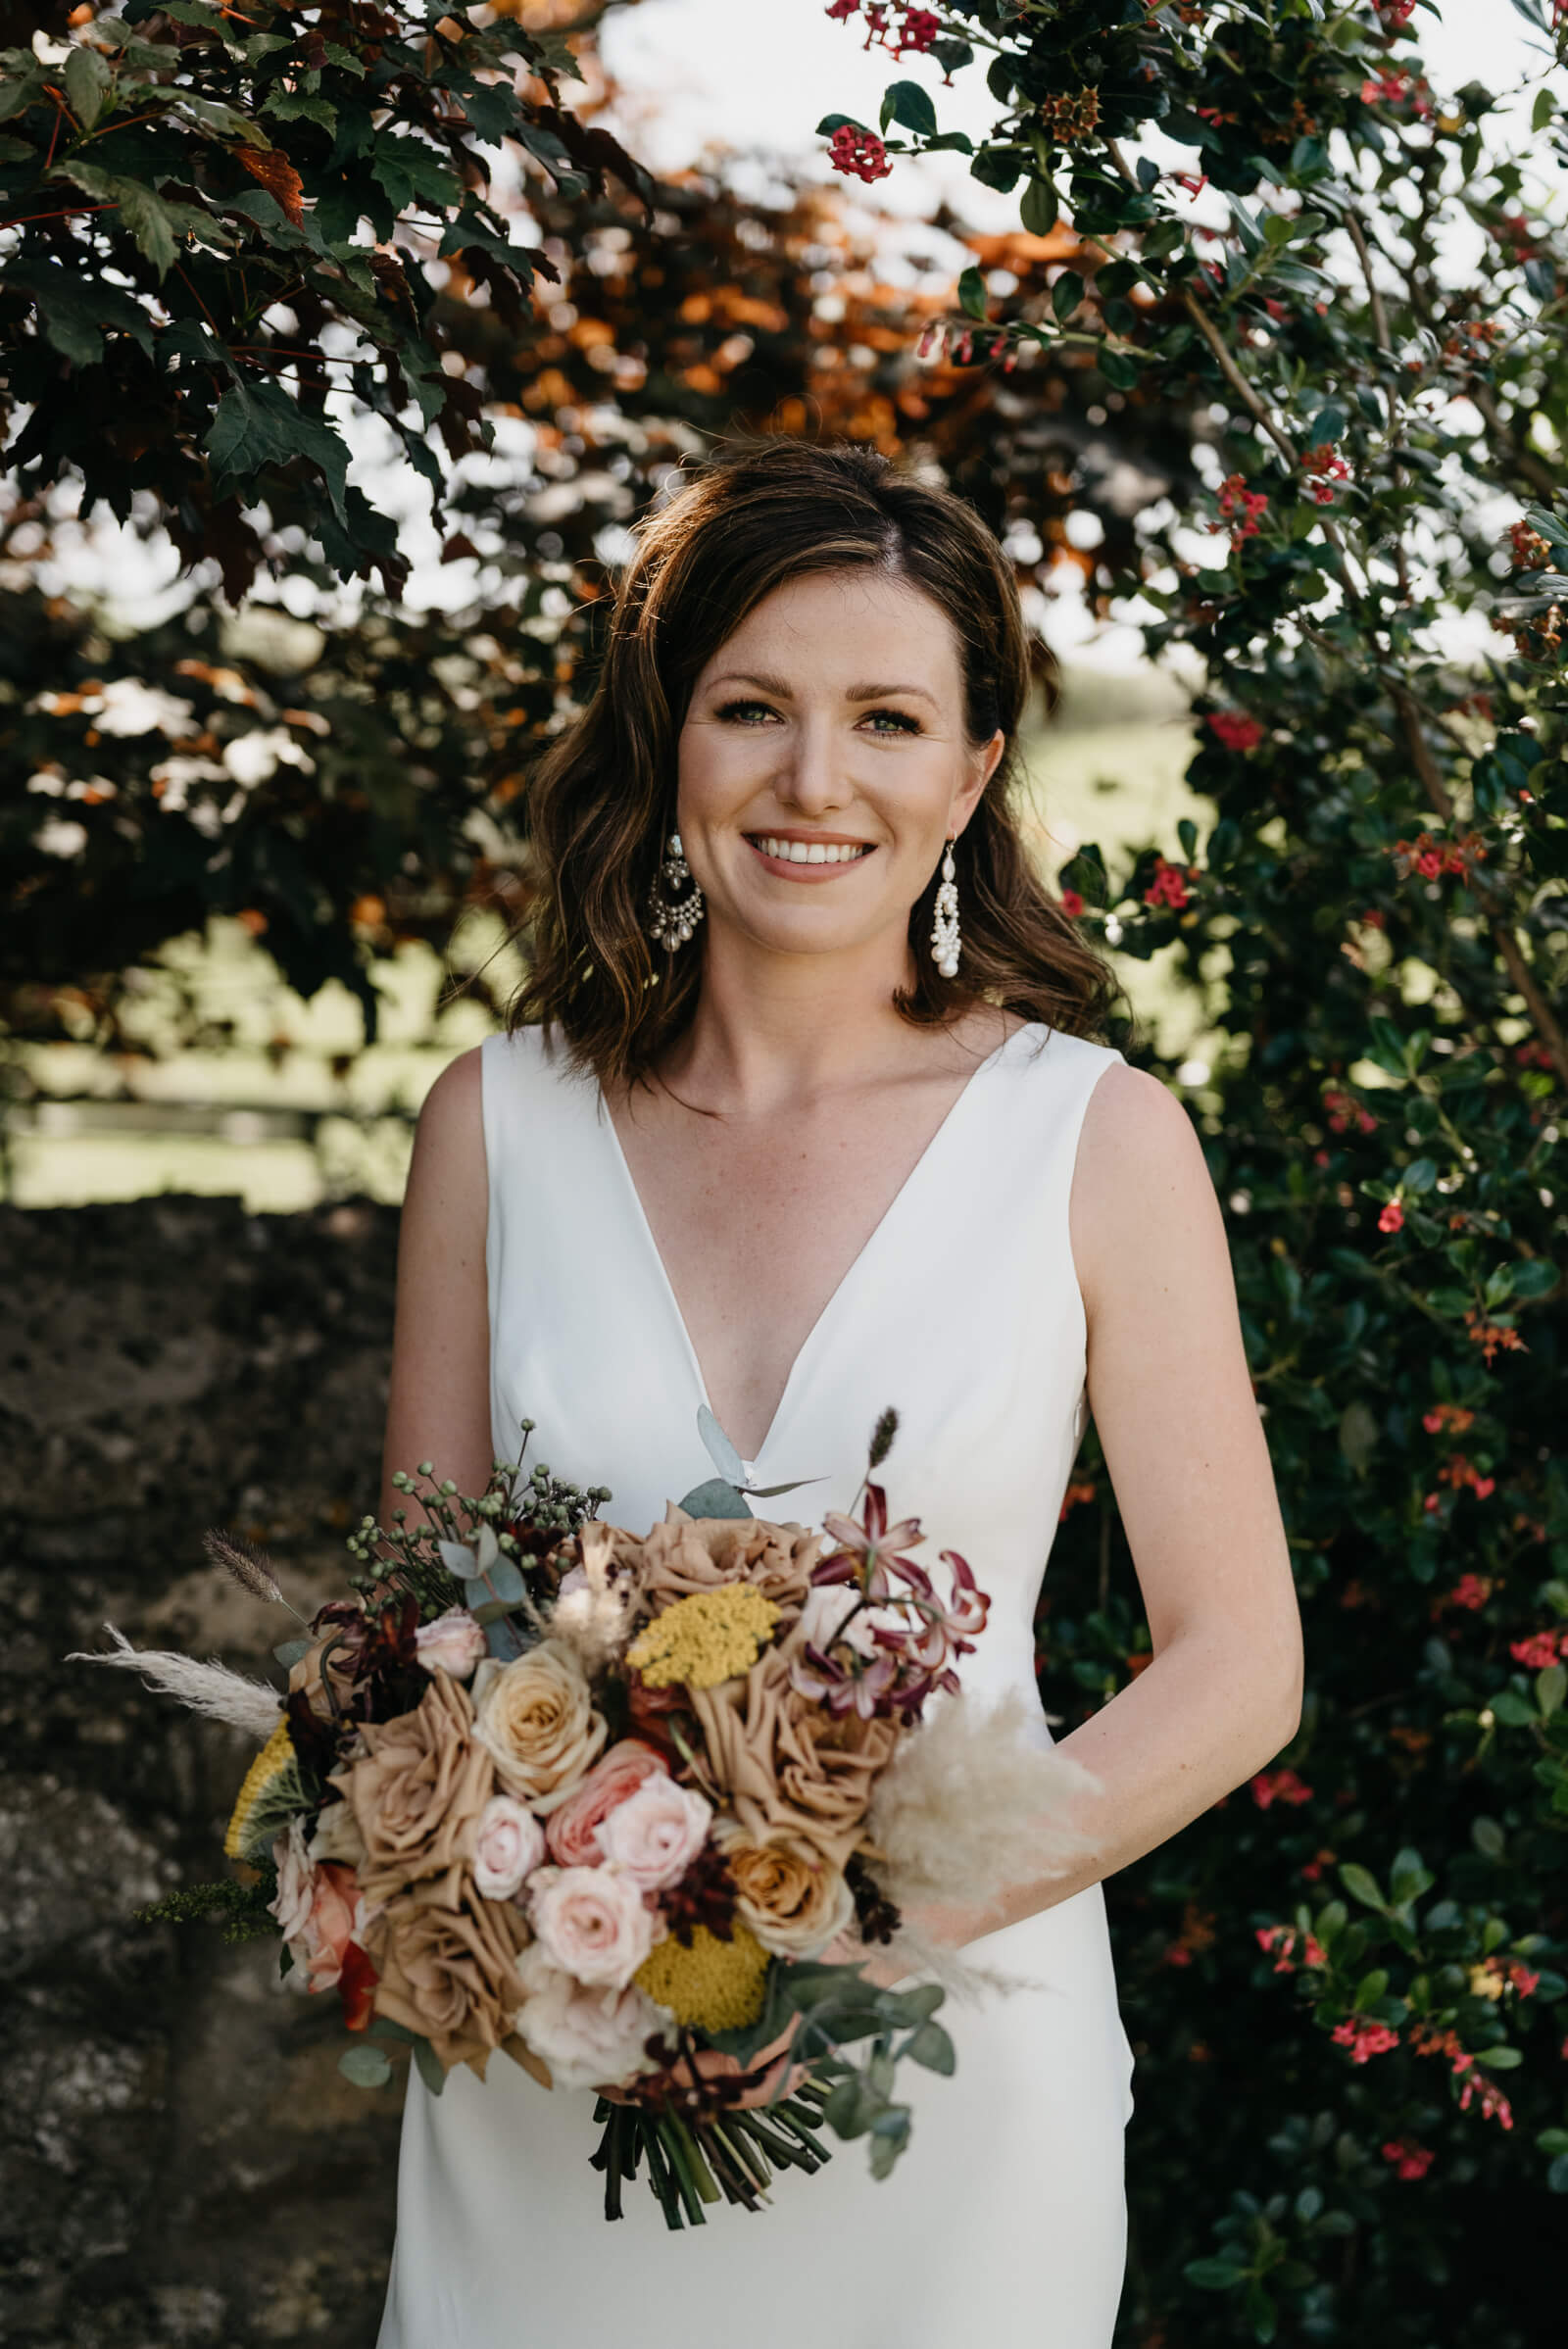 Radiant bride with flowers poses for photograph at Rosedew Farm Wedding venue in Llantwit major